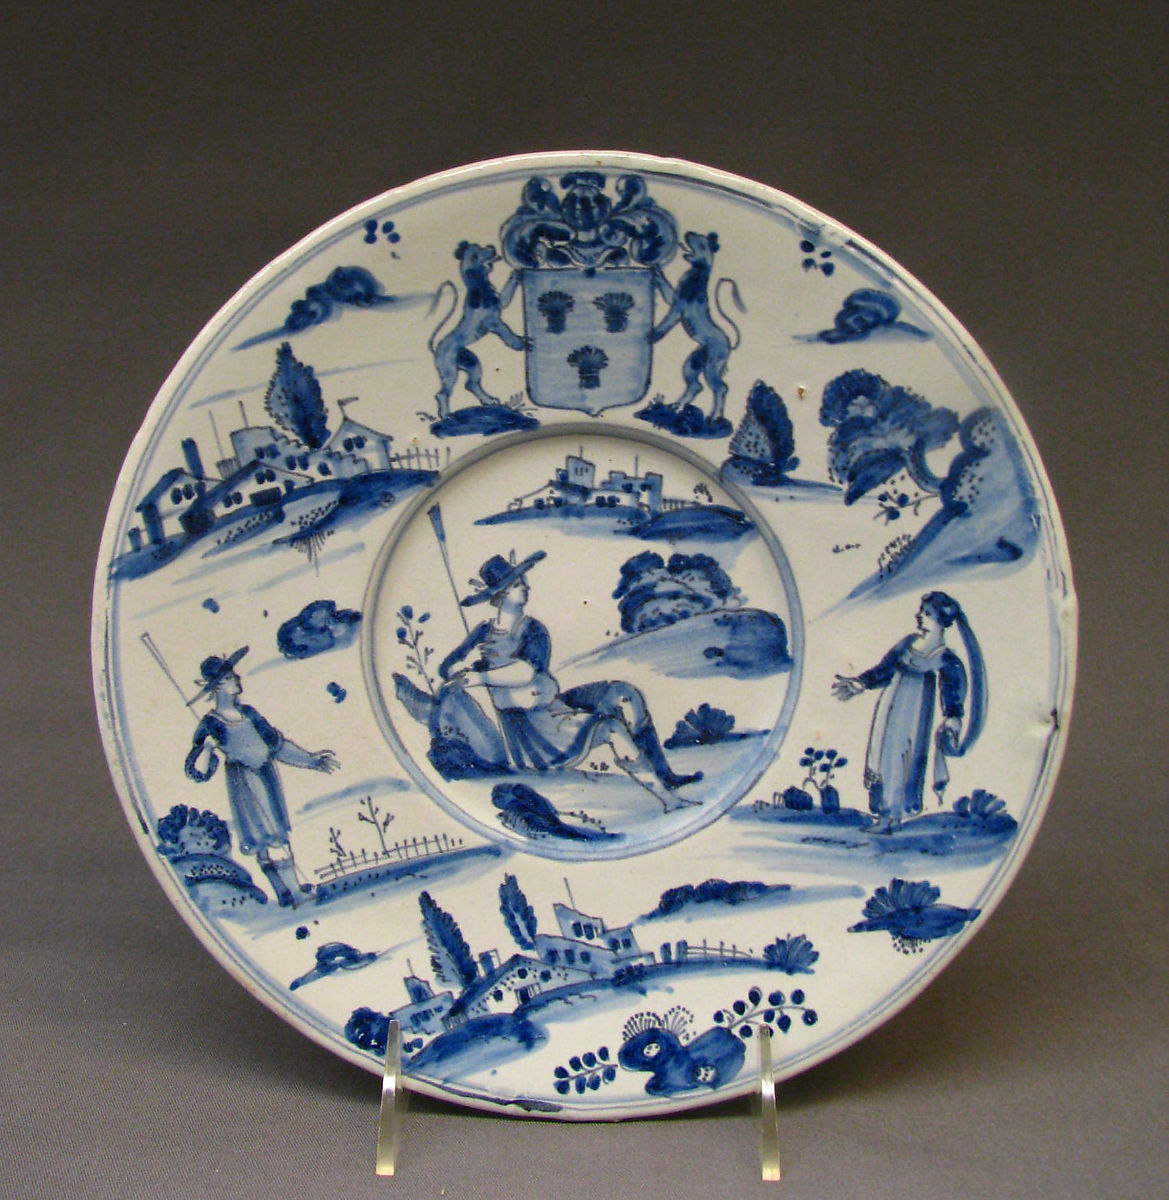 blue and white plate with french scenes